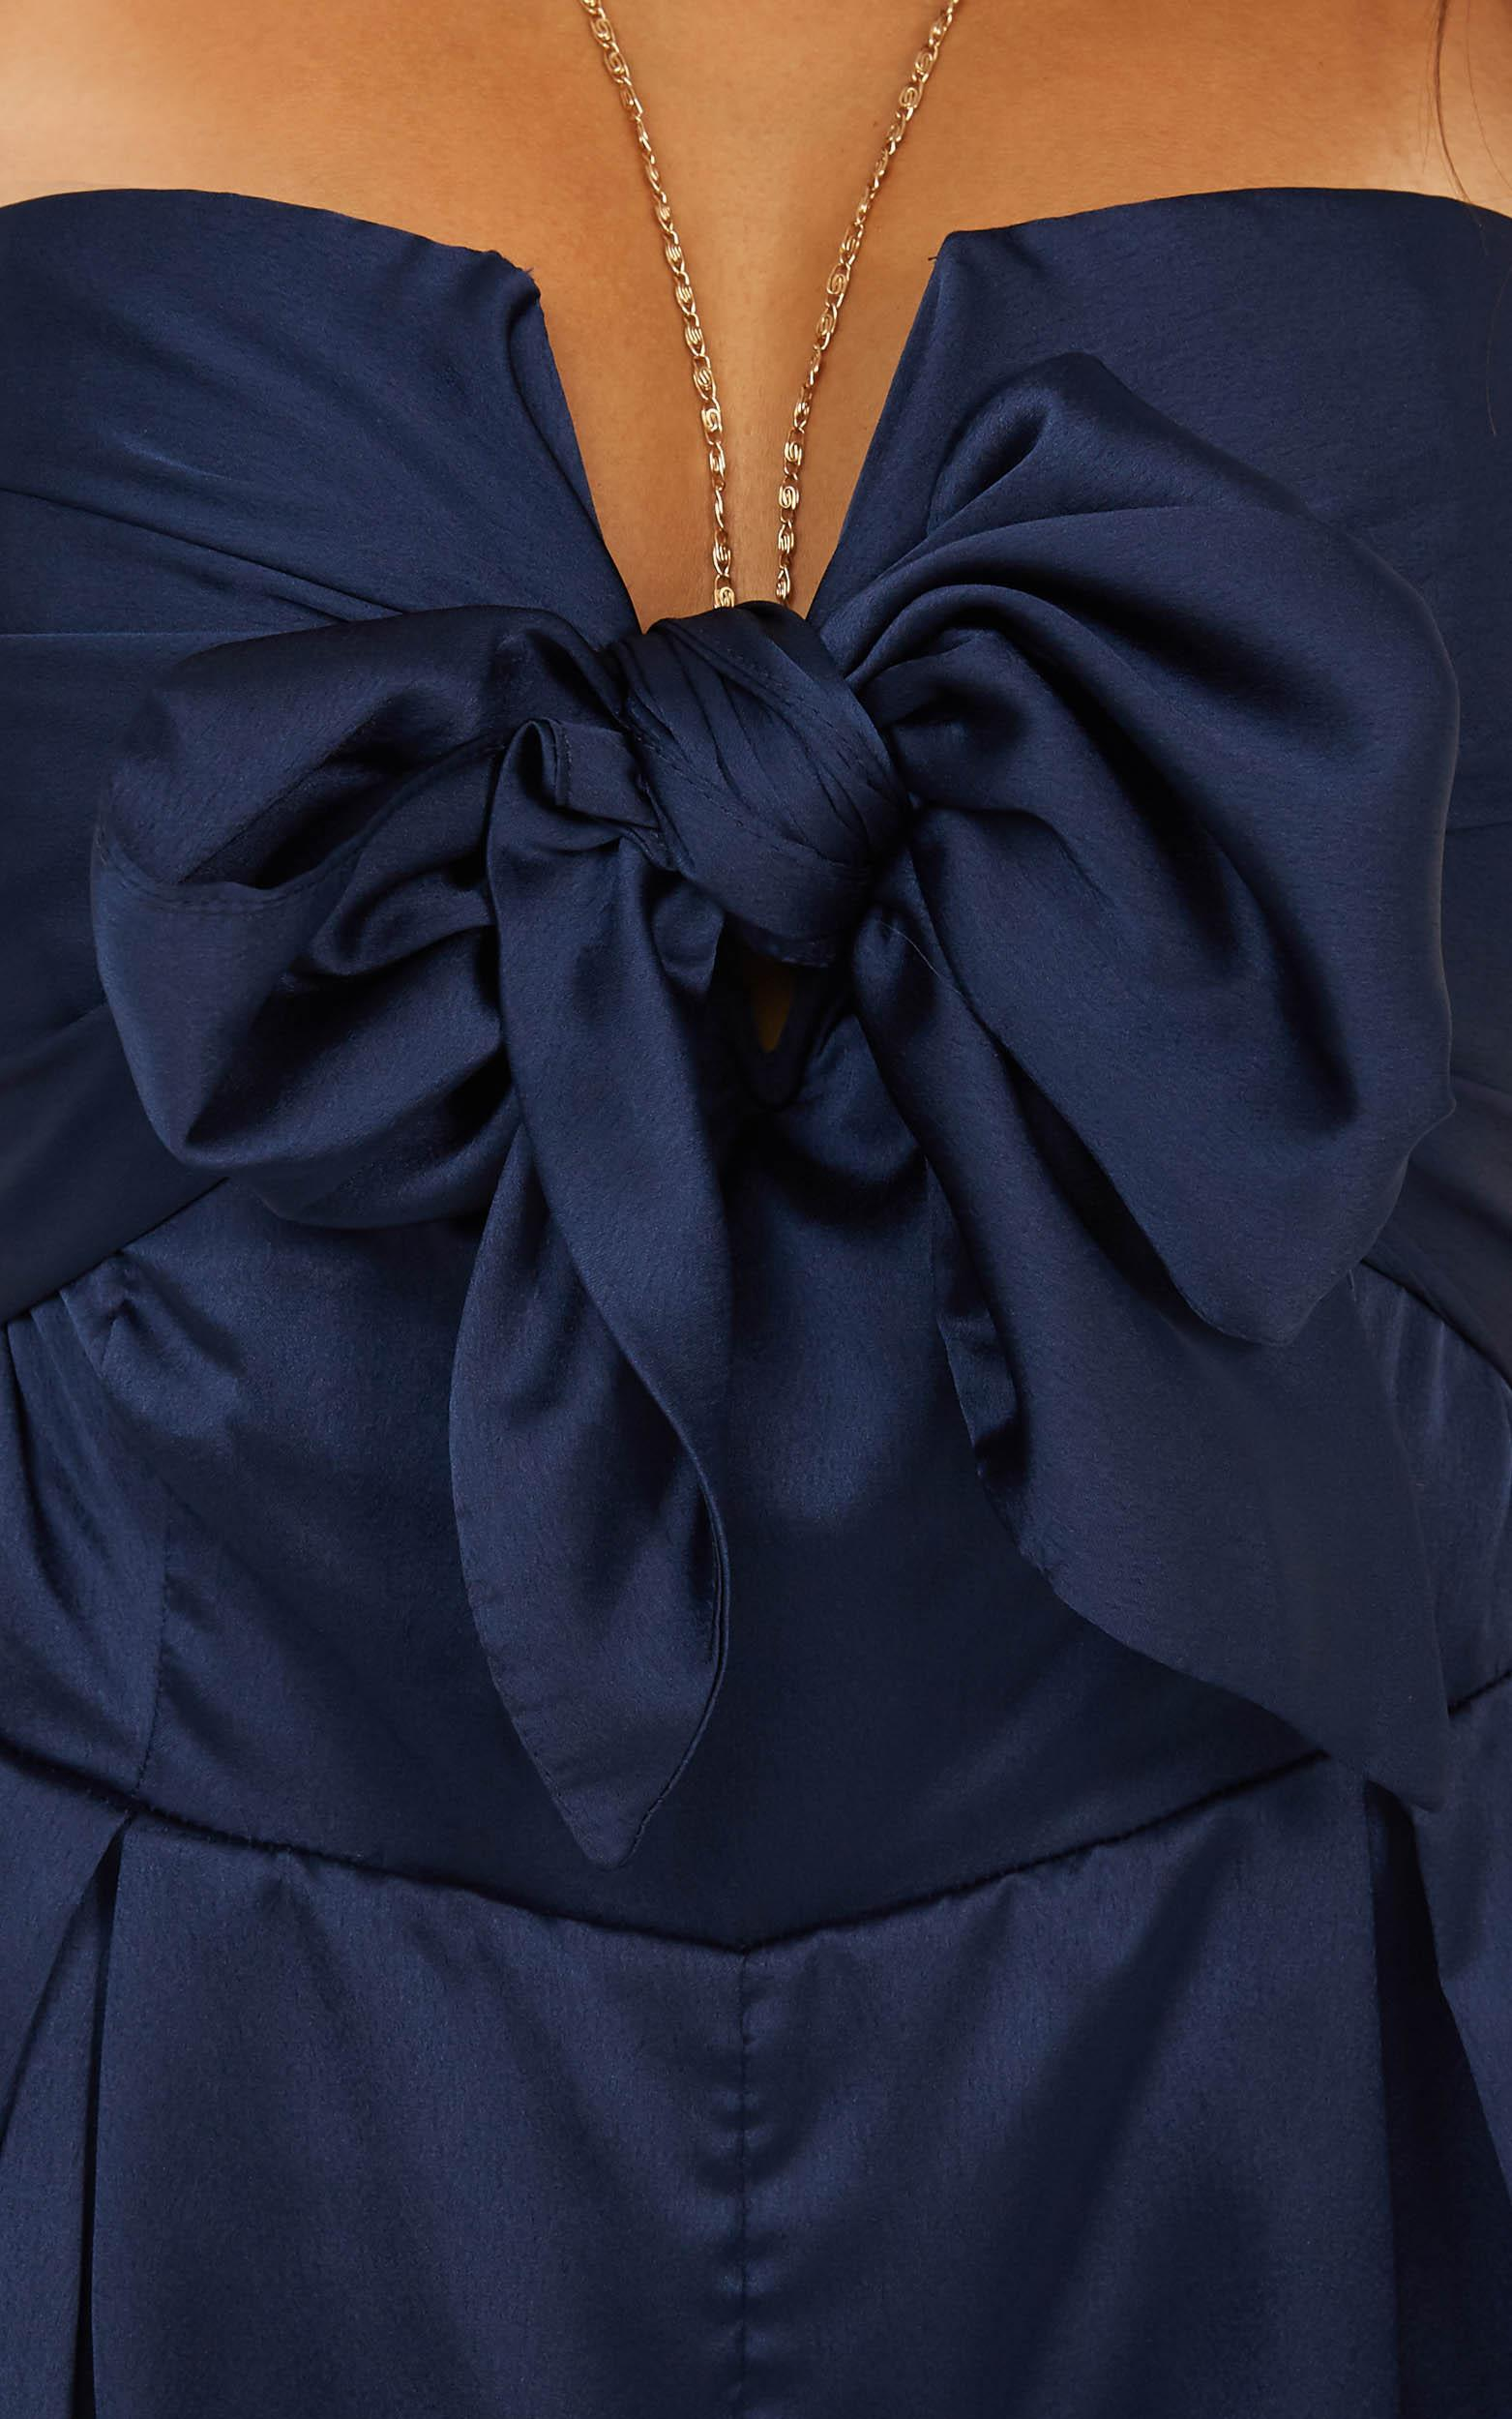 Under The Spotlight playsuit in navy satin - 12 (L), Navy, hi-res image number null